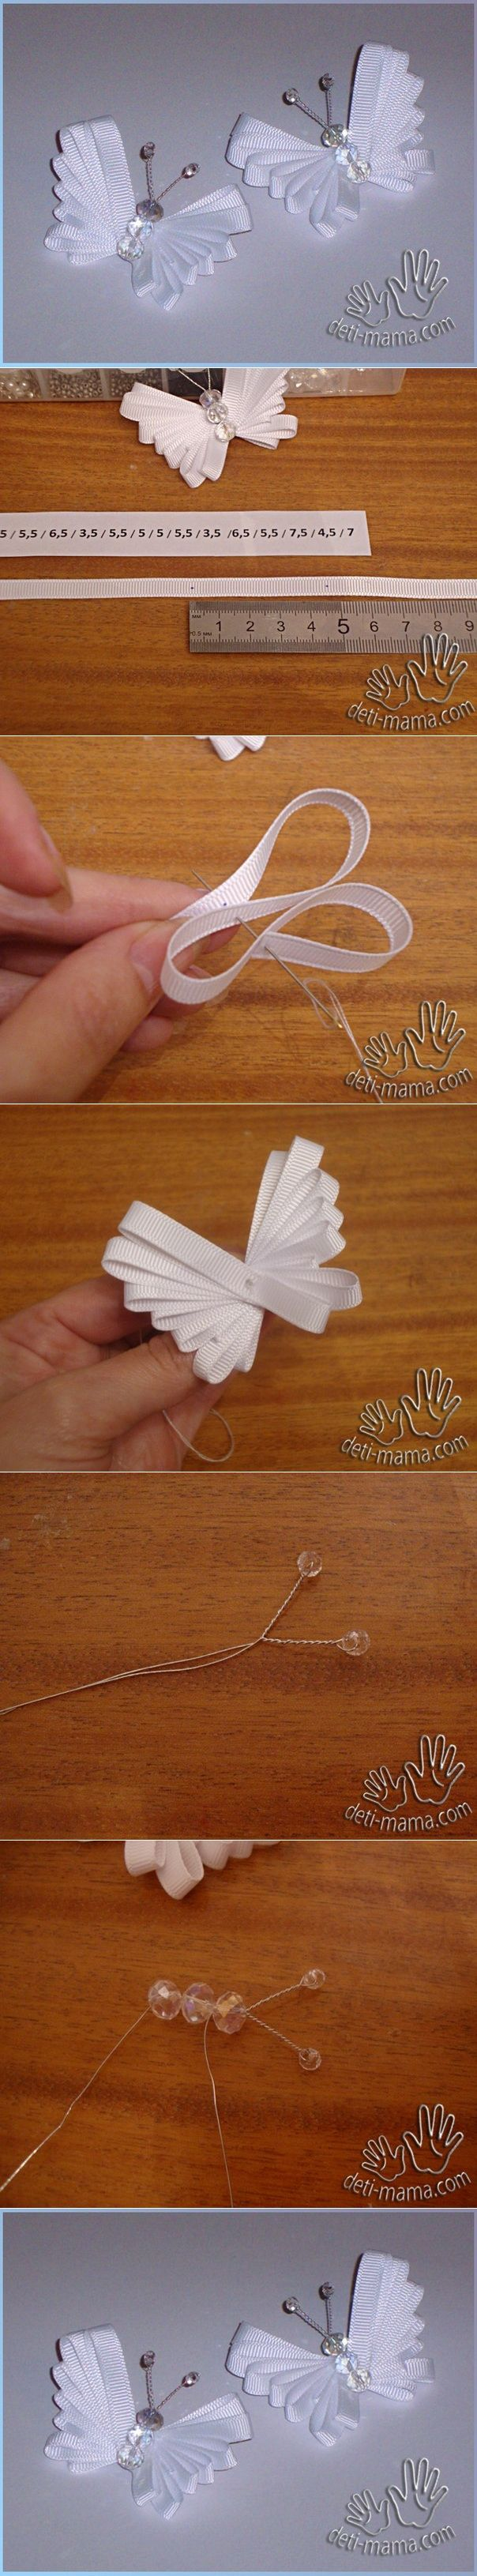 DIY Easy Ribbon Butterfly Más                                                                                                                                                      More